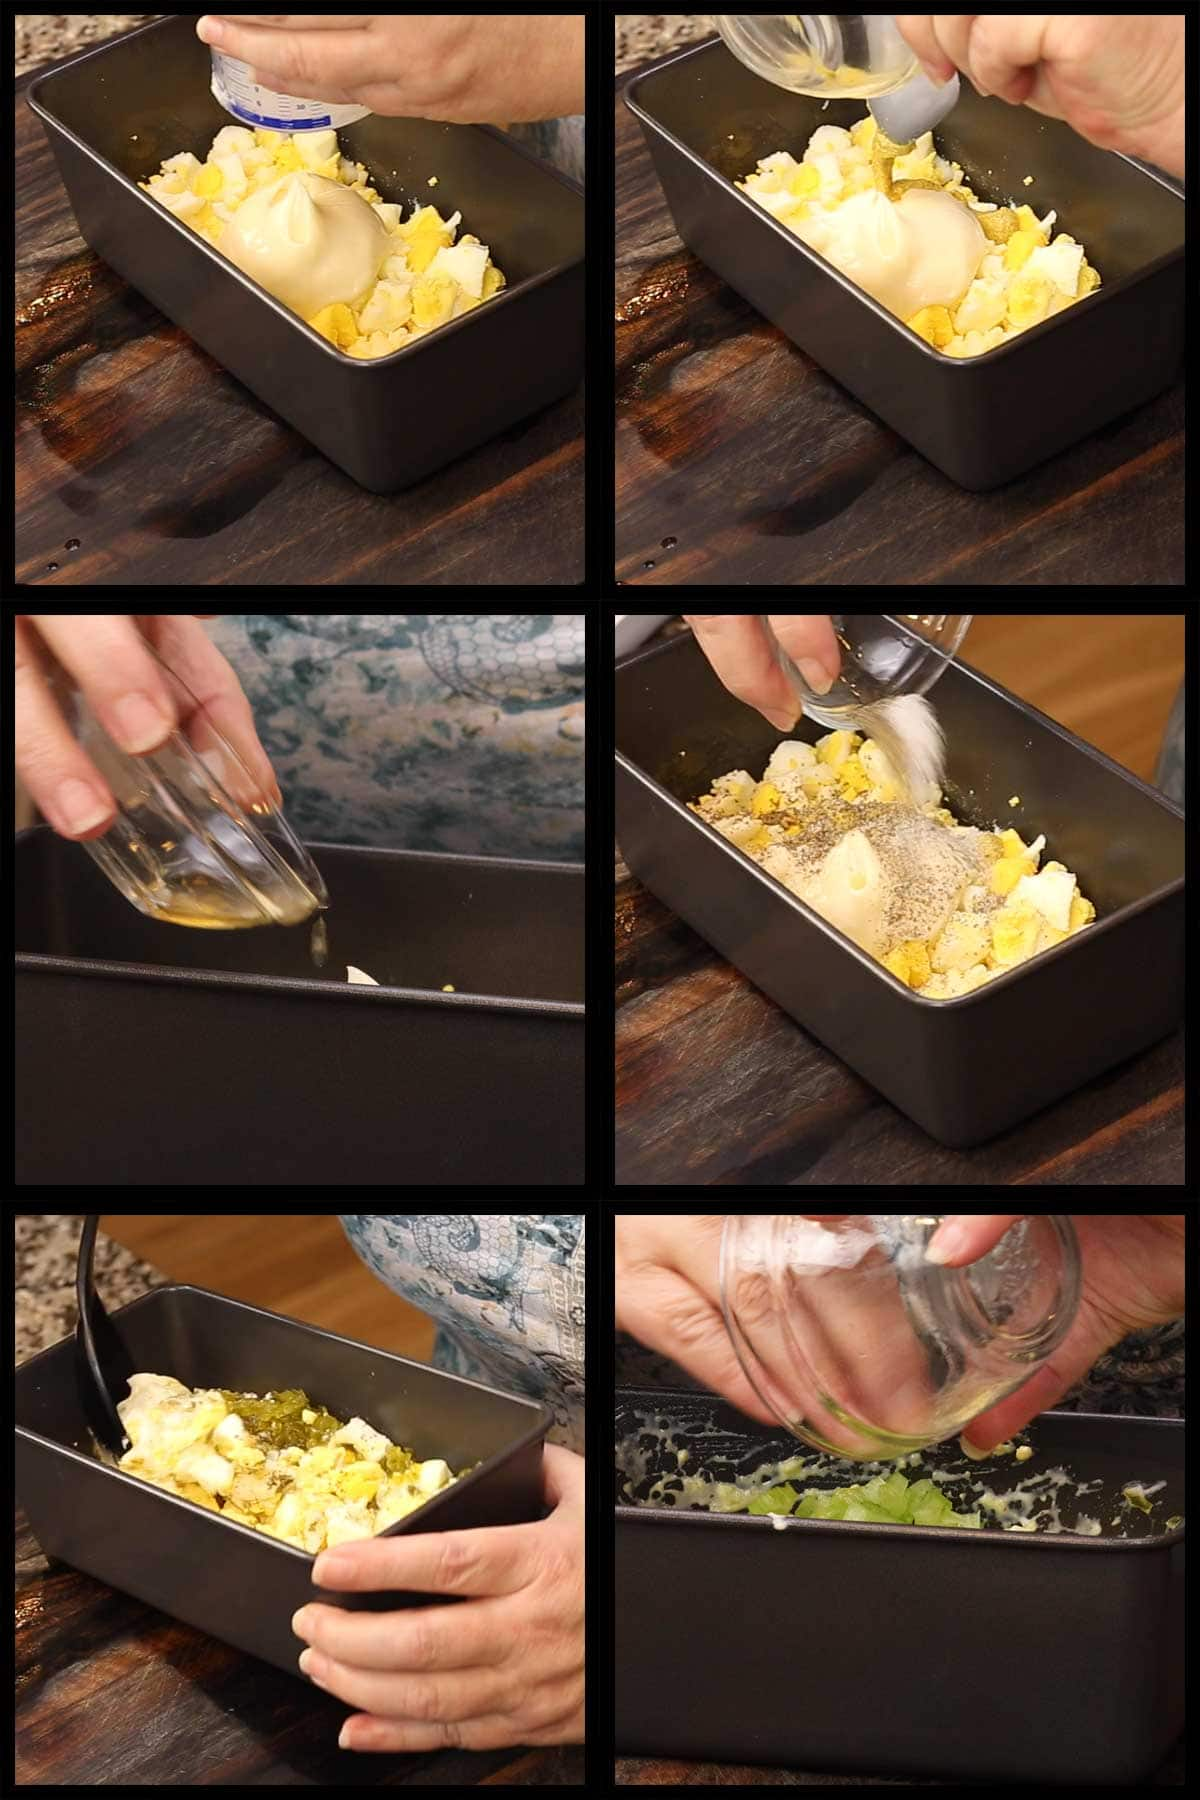 mixing ingredients into eggs to make egg salad